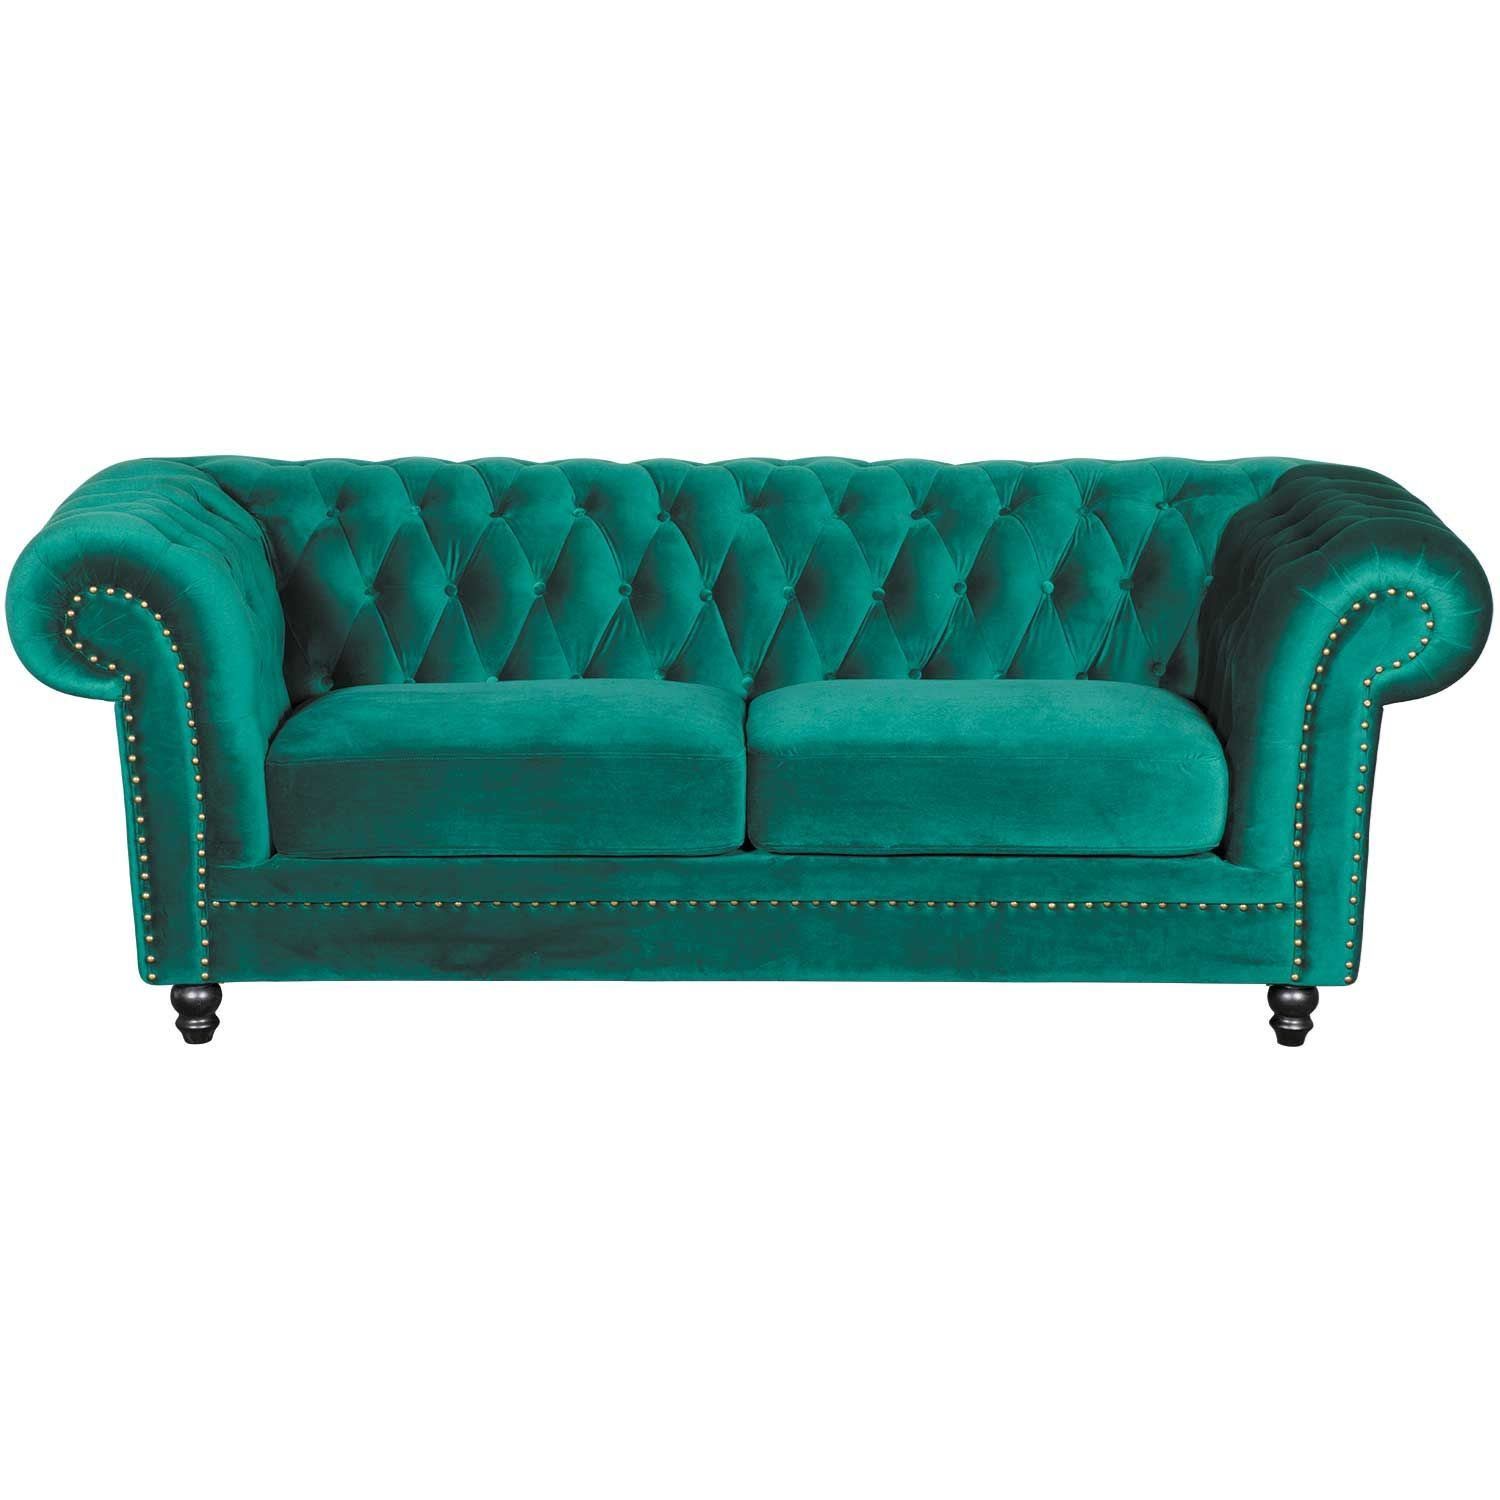 Callie Tufted Emerald Sofa | My225 S3/cc 42 | Cambridge Home | Afw Intended For Callie Sofa Chairs (Image 17 of 25)